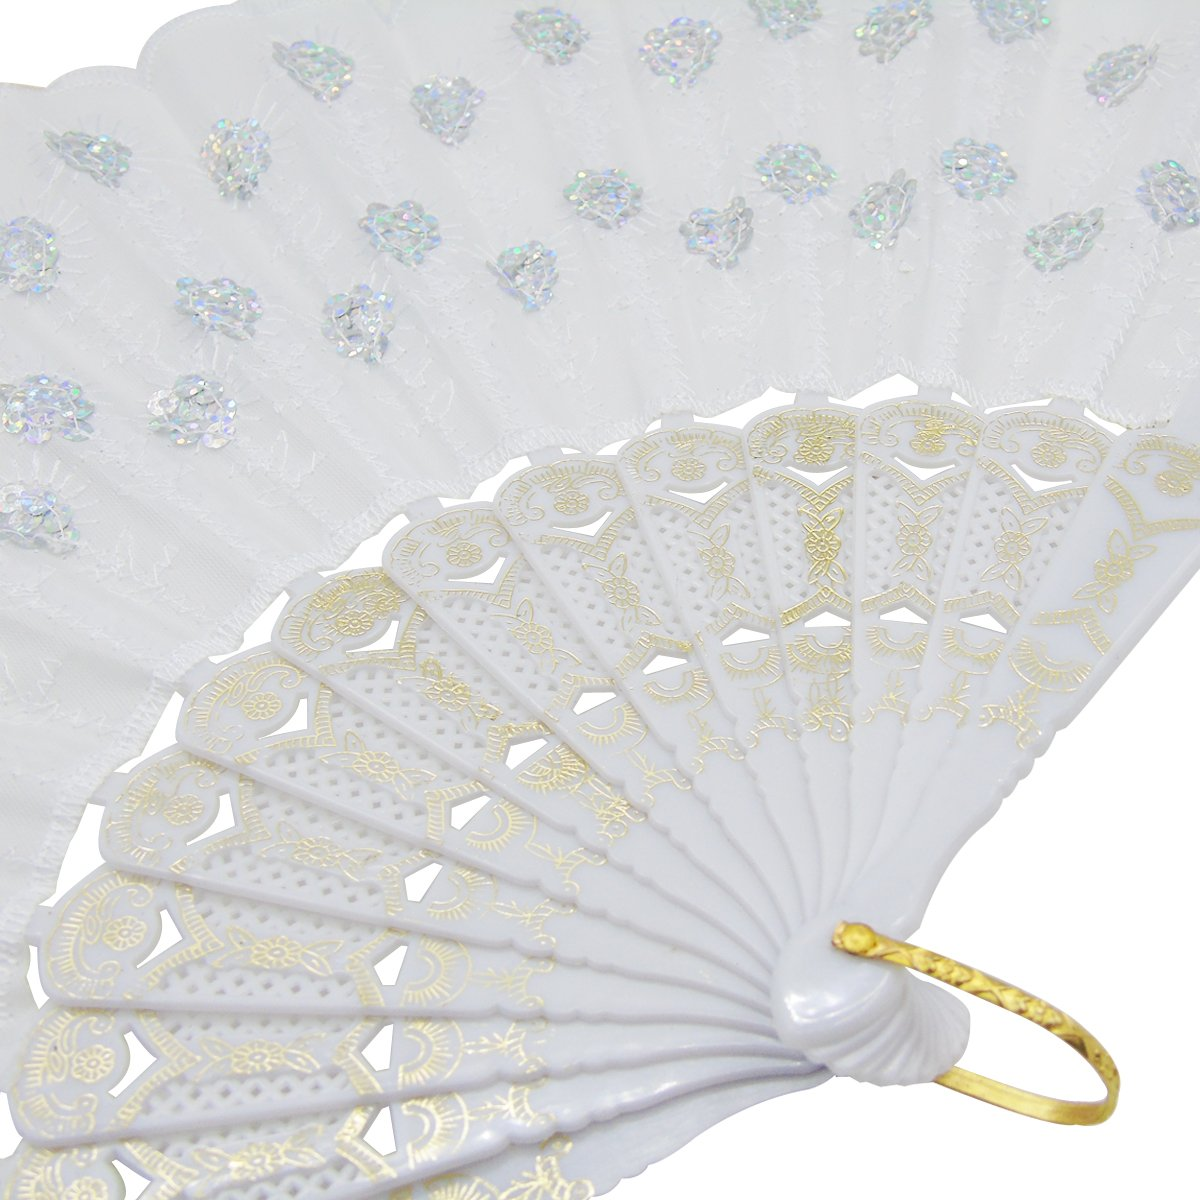 Amazon.com: 6 Packs White Spanish Floral Folding Hand Fan Women Lace ...